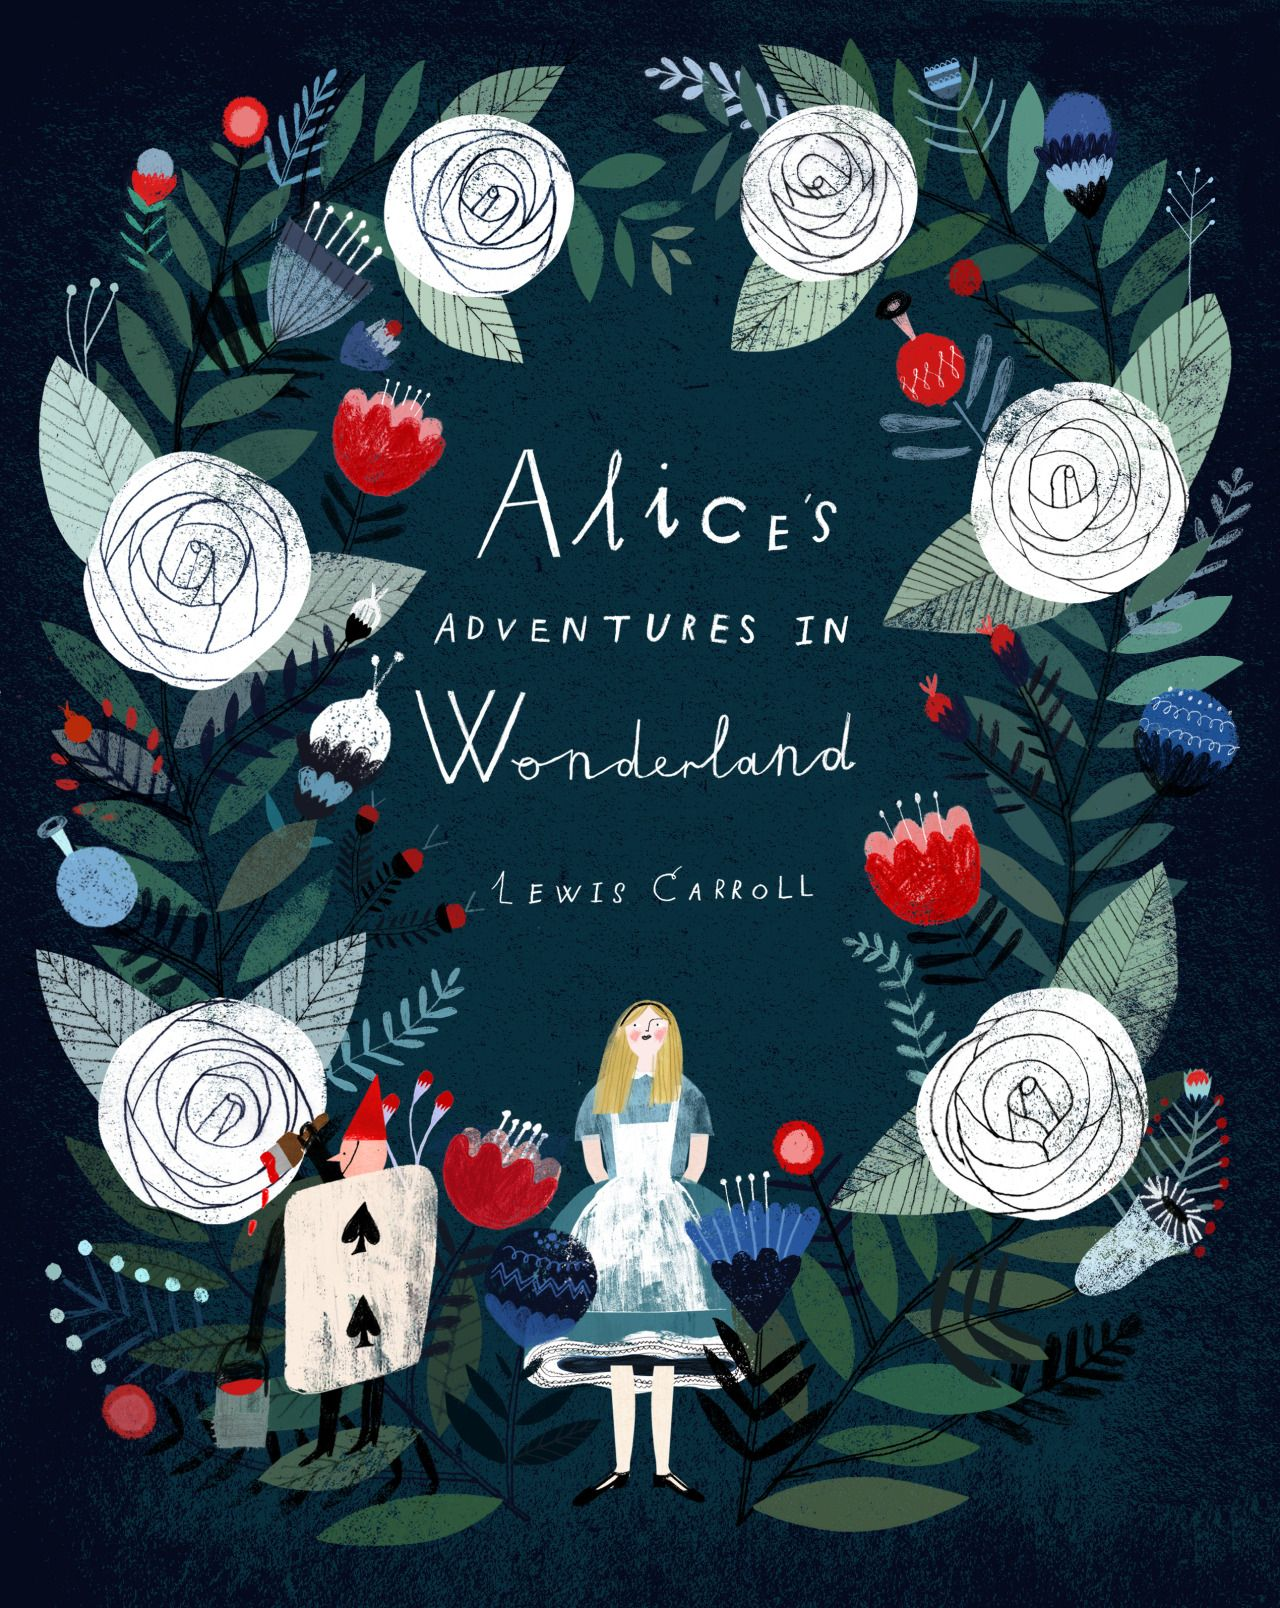 Book Cover With Illustration : Alice s adventures in wonderland by lewis carroll design